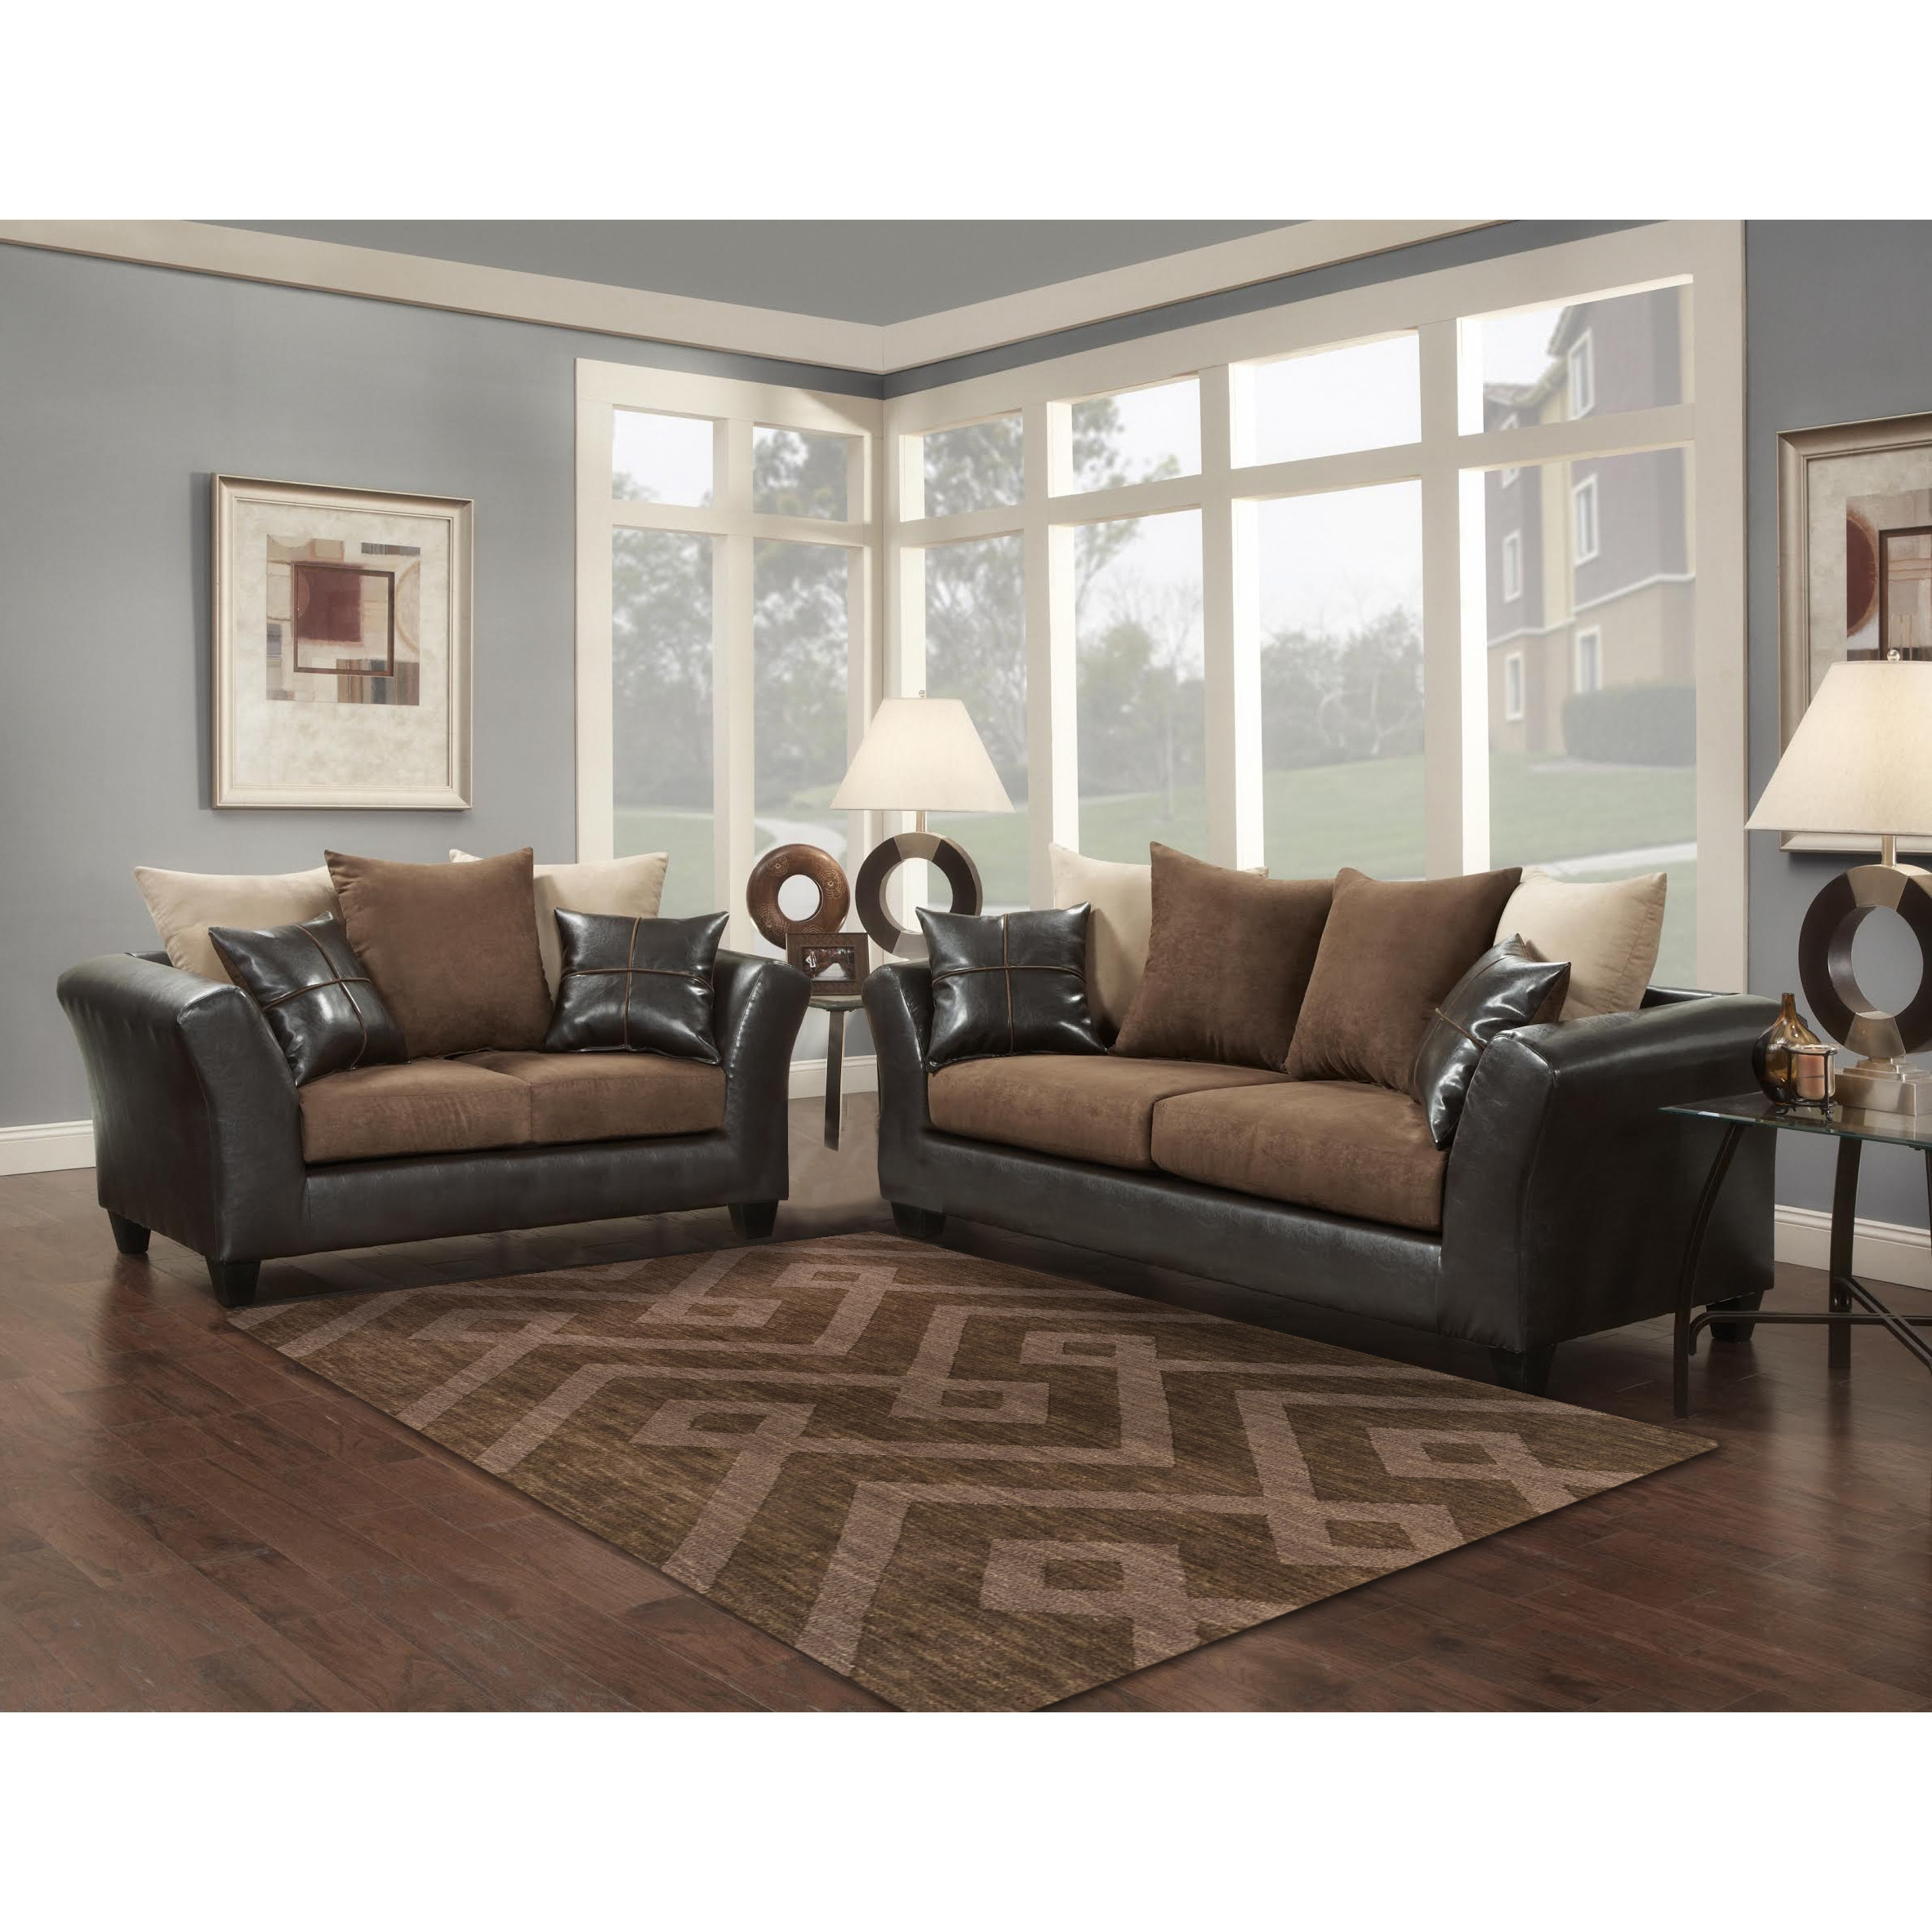 Braxton Sectional Sofa Reviews Sofa Menzilperde In Braxton Sectional Sofa (#6 of 12)